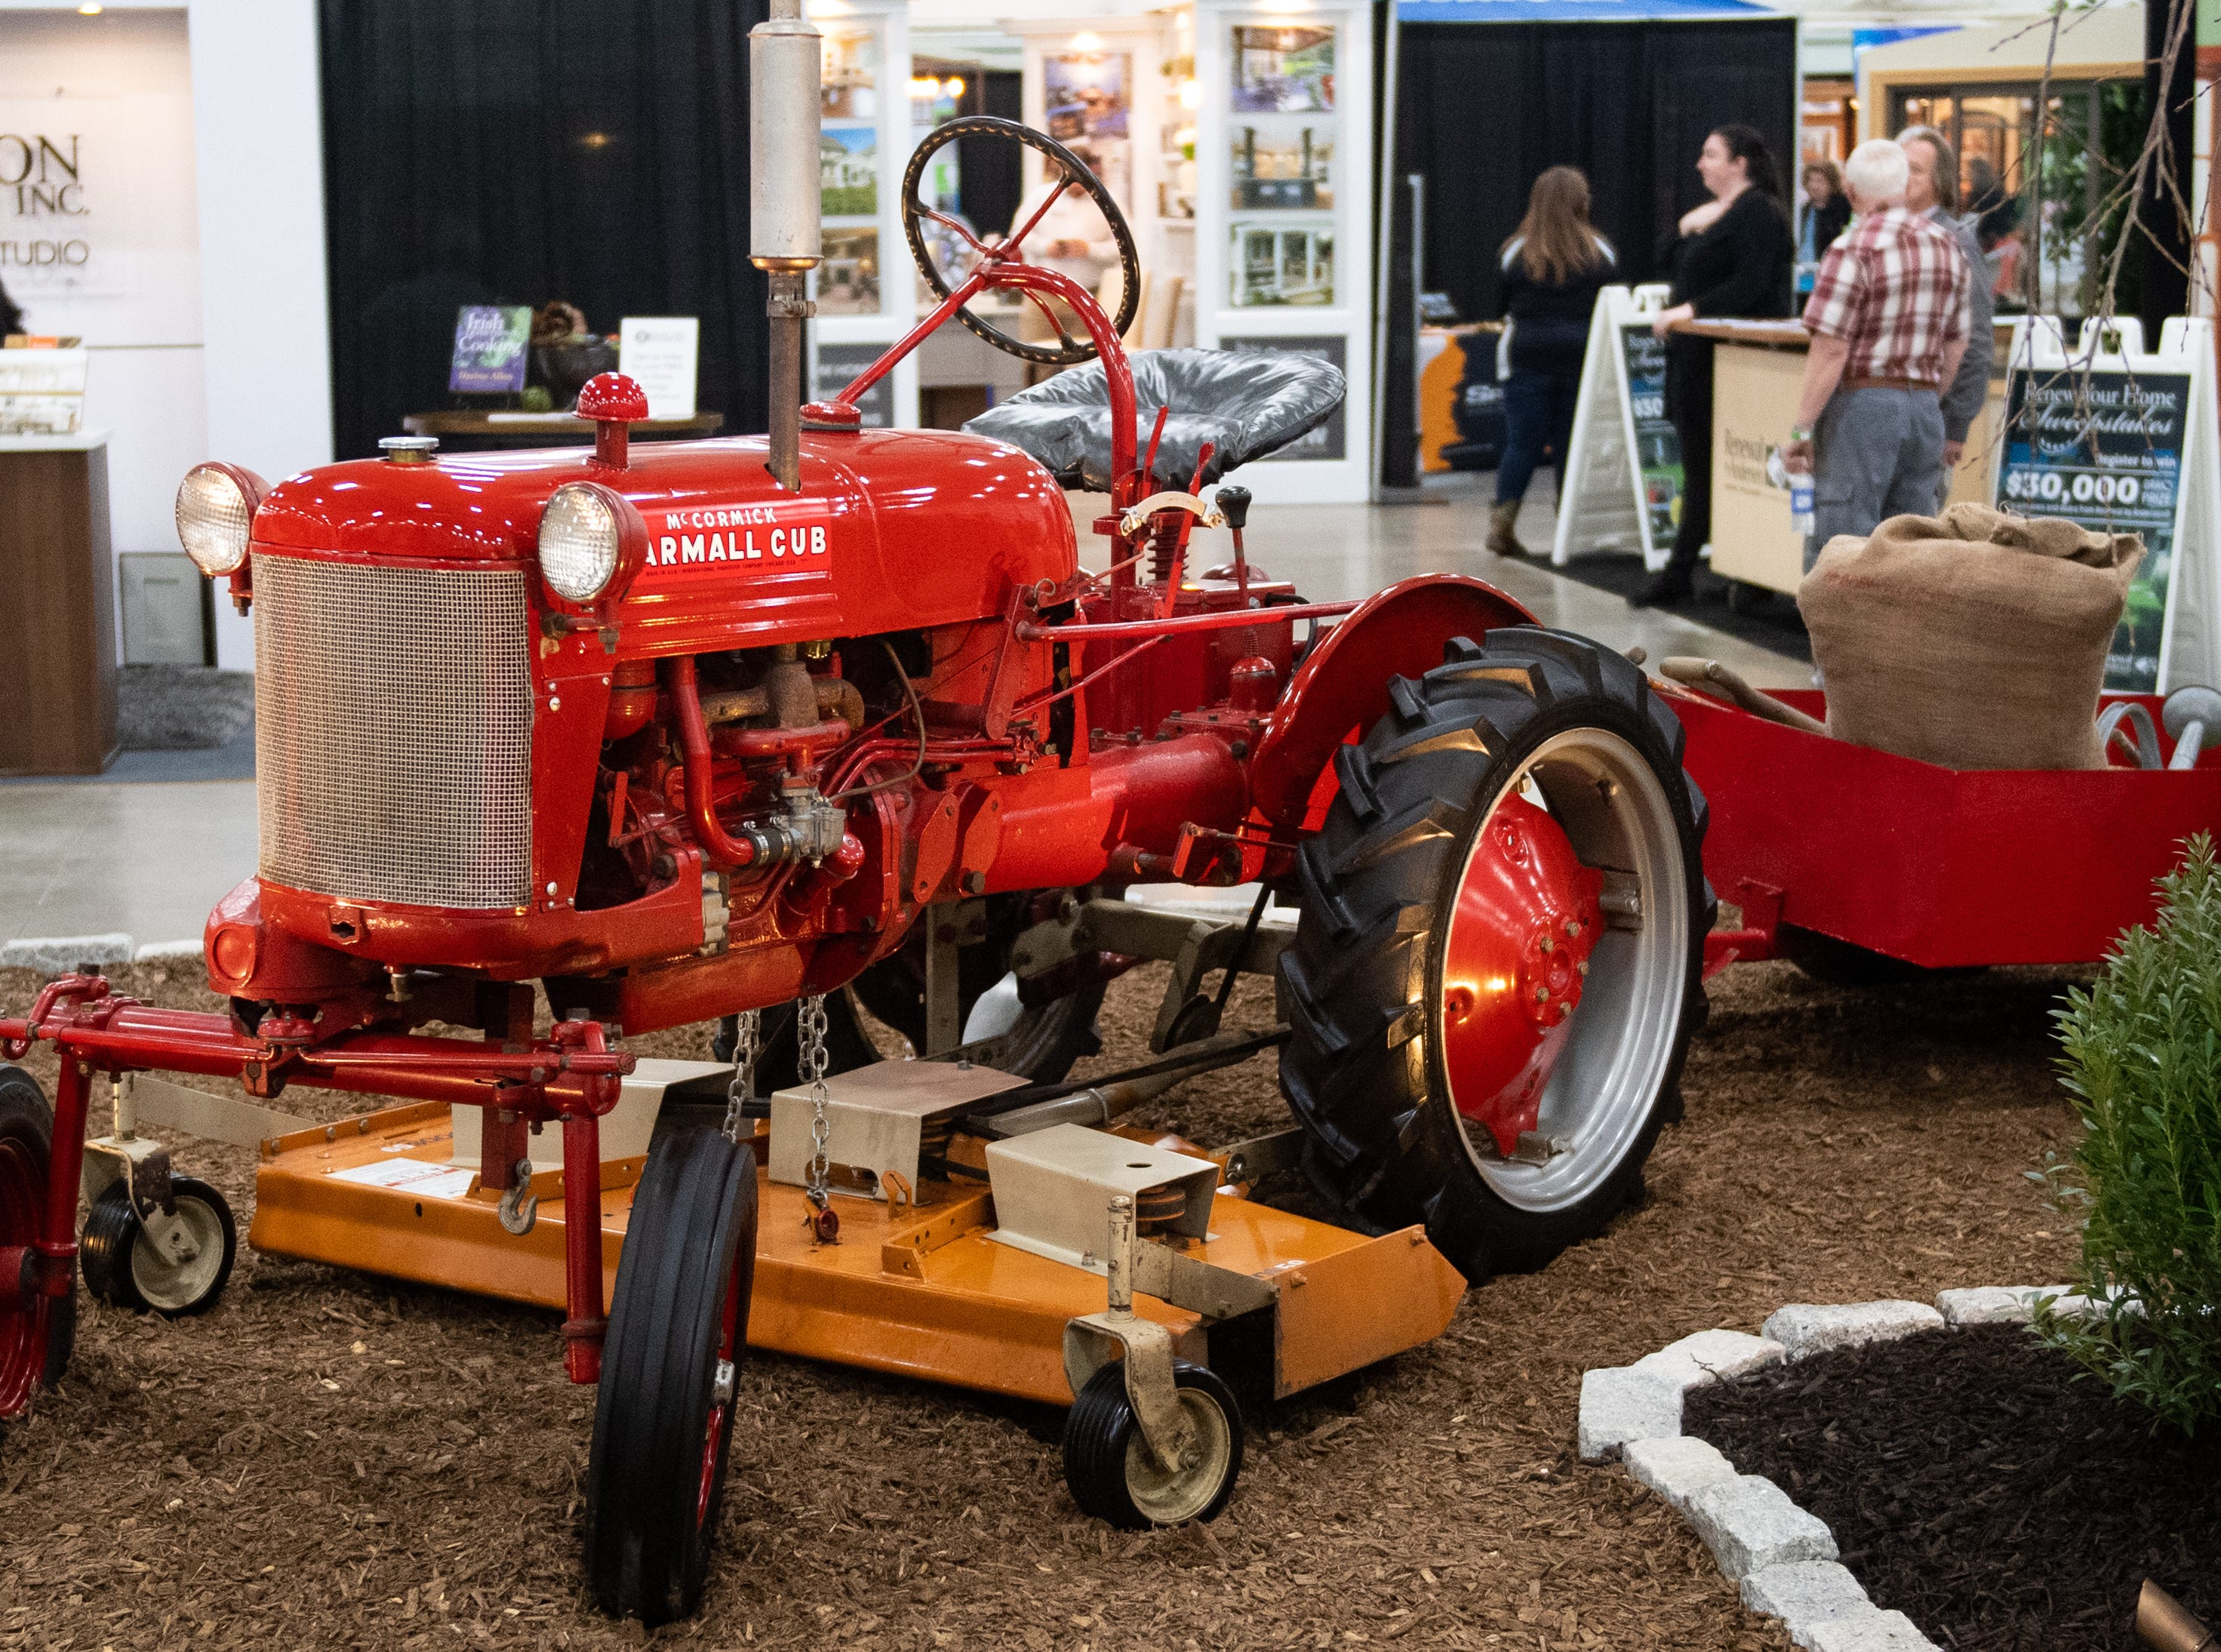 Farming equipment is sprinkled throughout the Home & Garden Show, February 8, 2019.